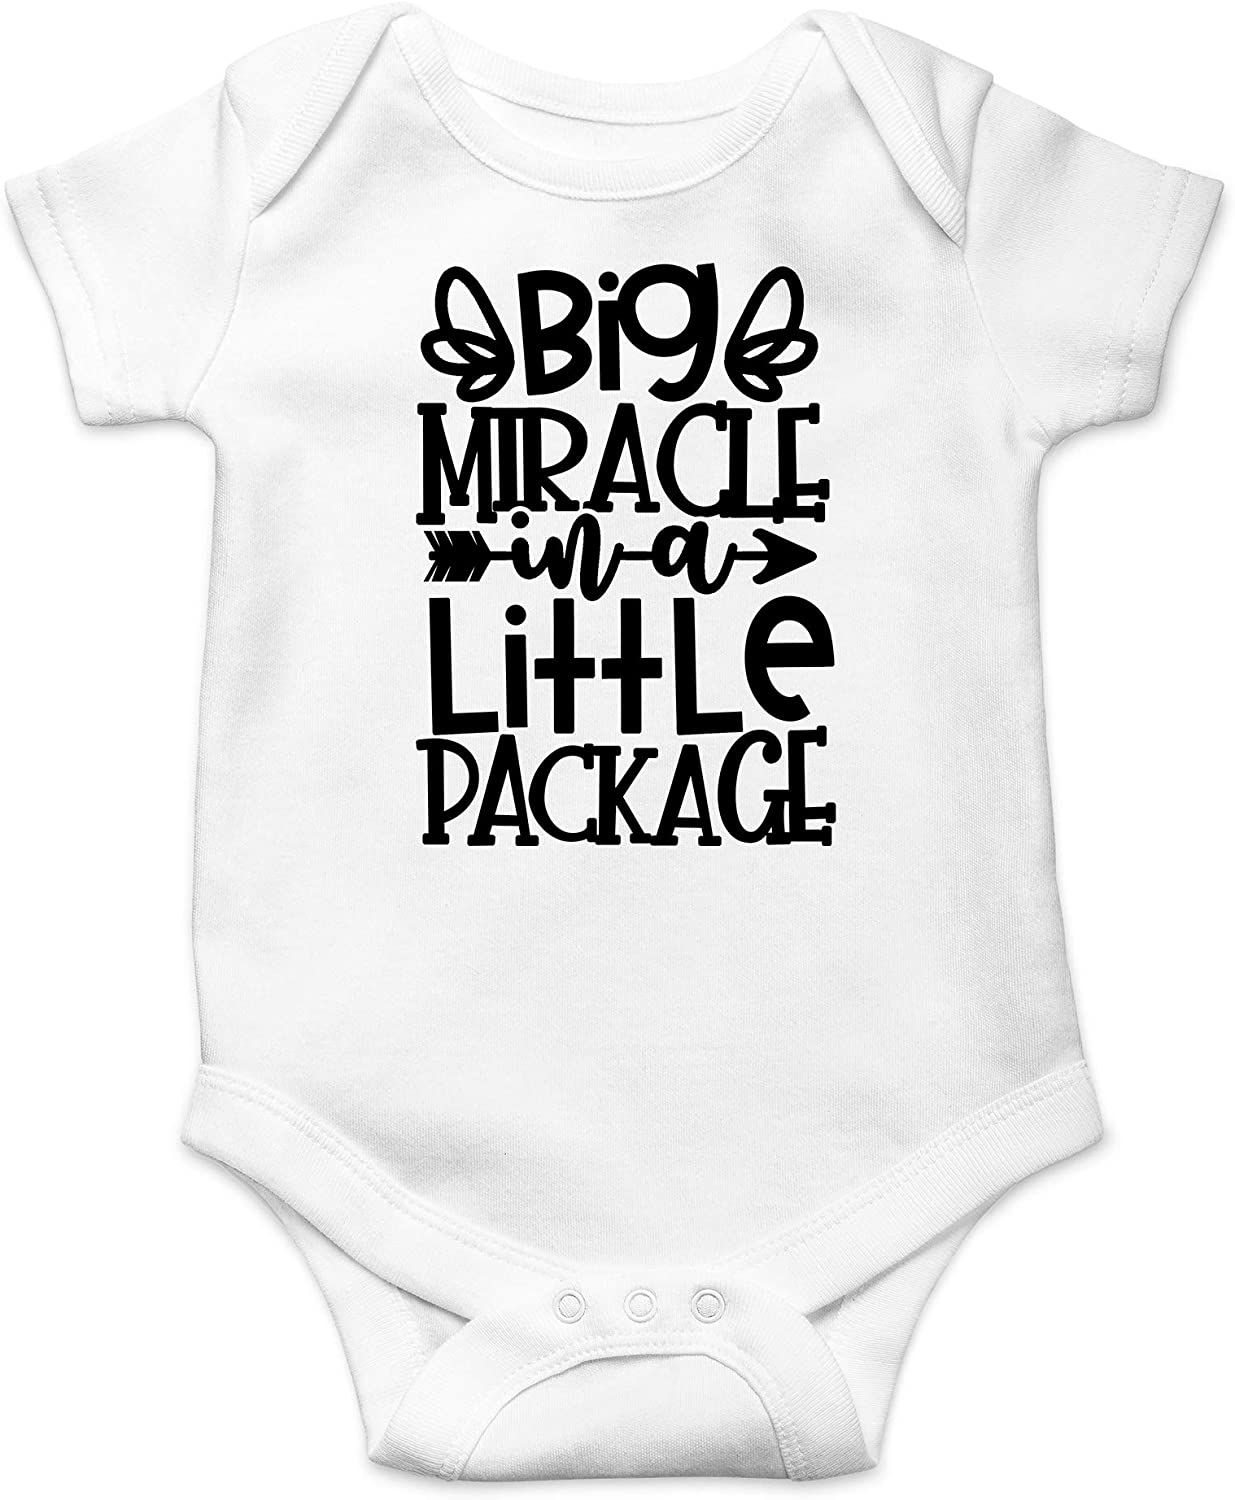 Big Miracle in A Little Package - Pregnancy Reveal Take Home Outfit - Cute Infant One-Piece Baby Bodysuit